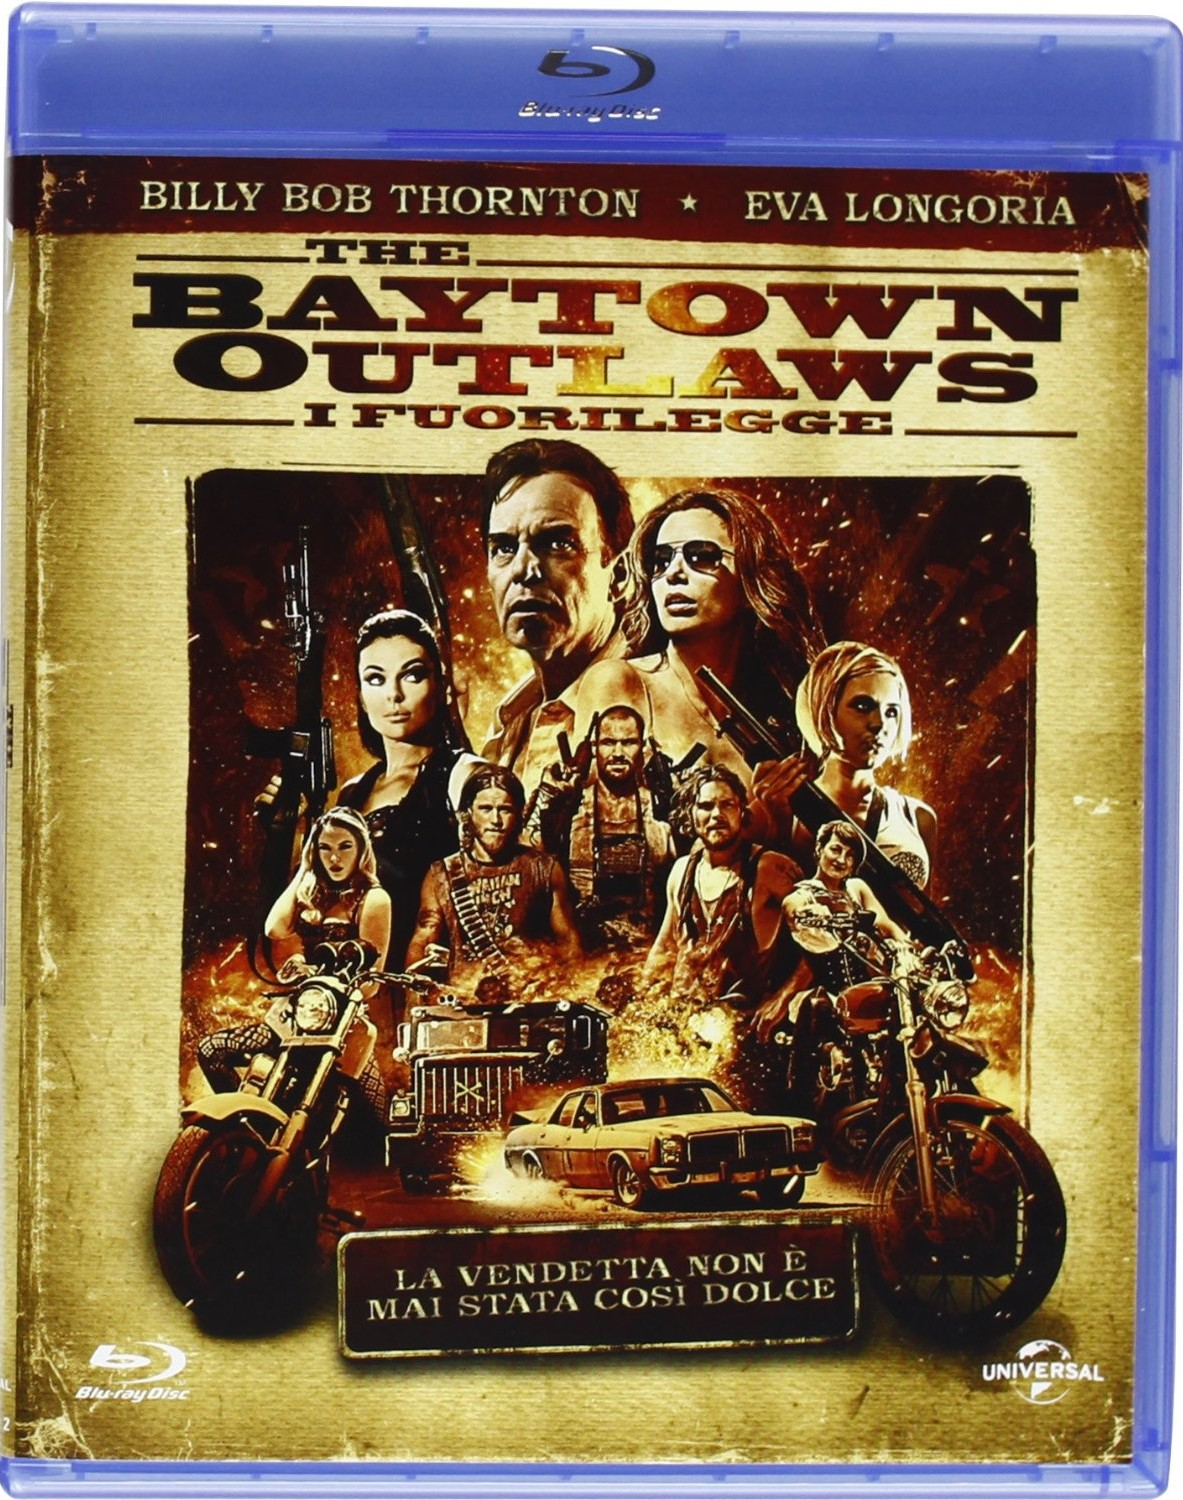 bytown outlaws fuorilegge blu-ray